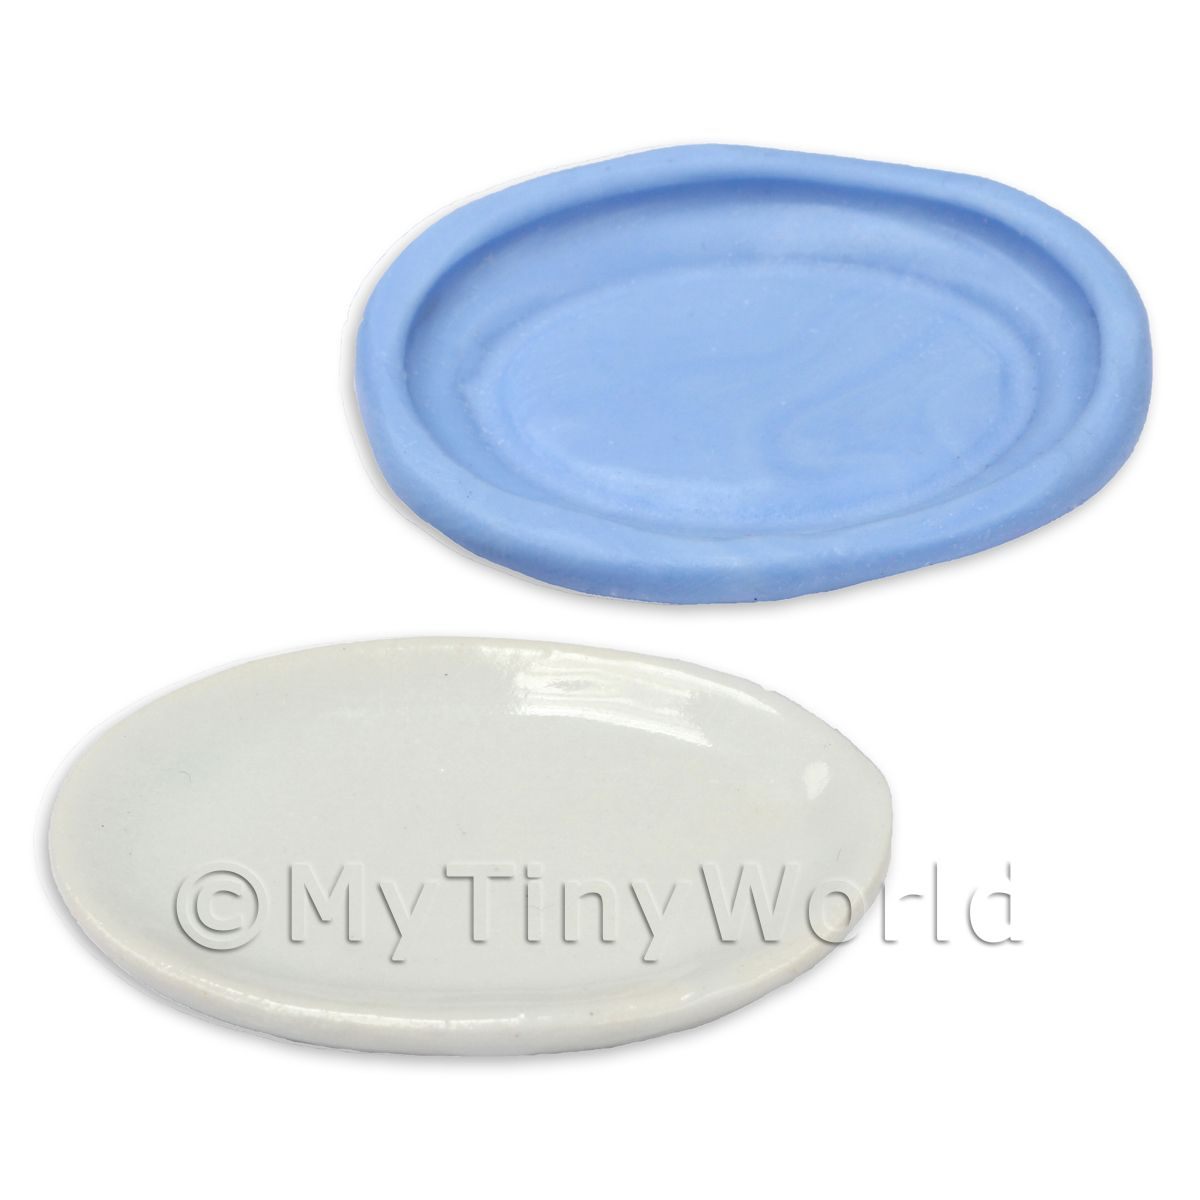 Dolls House Miniature Reusable Oval Plate Silicone Mould